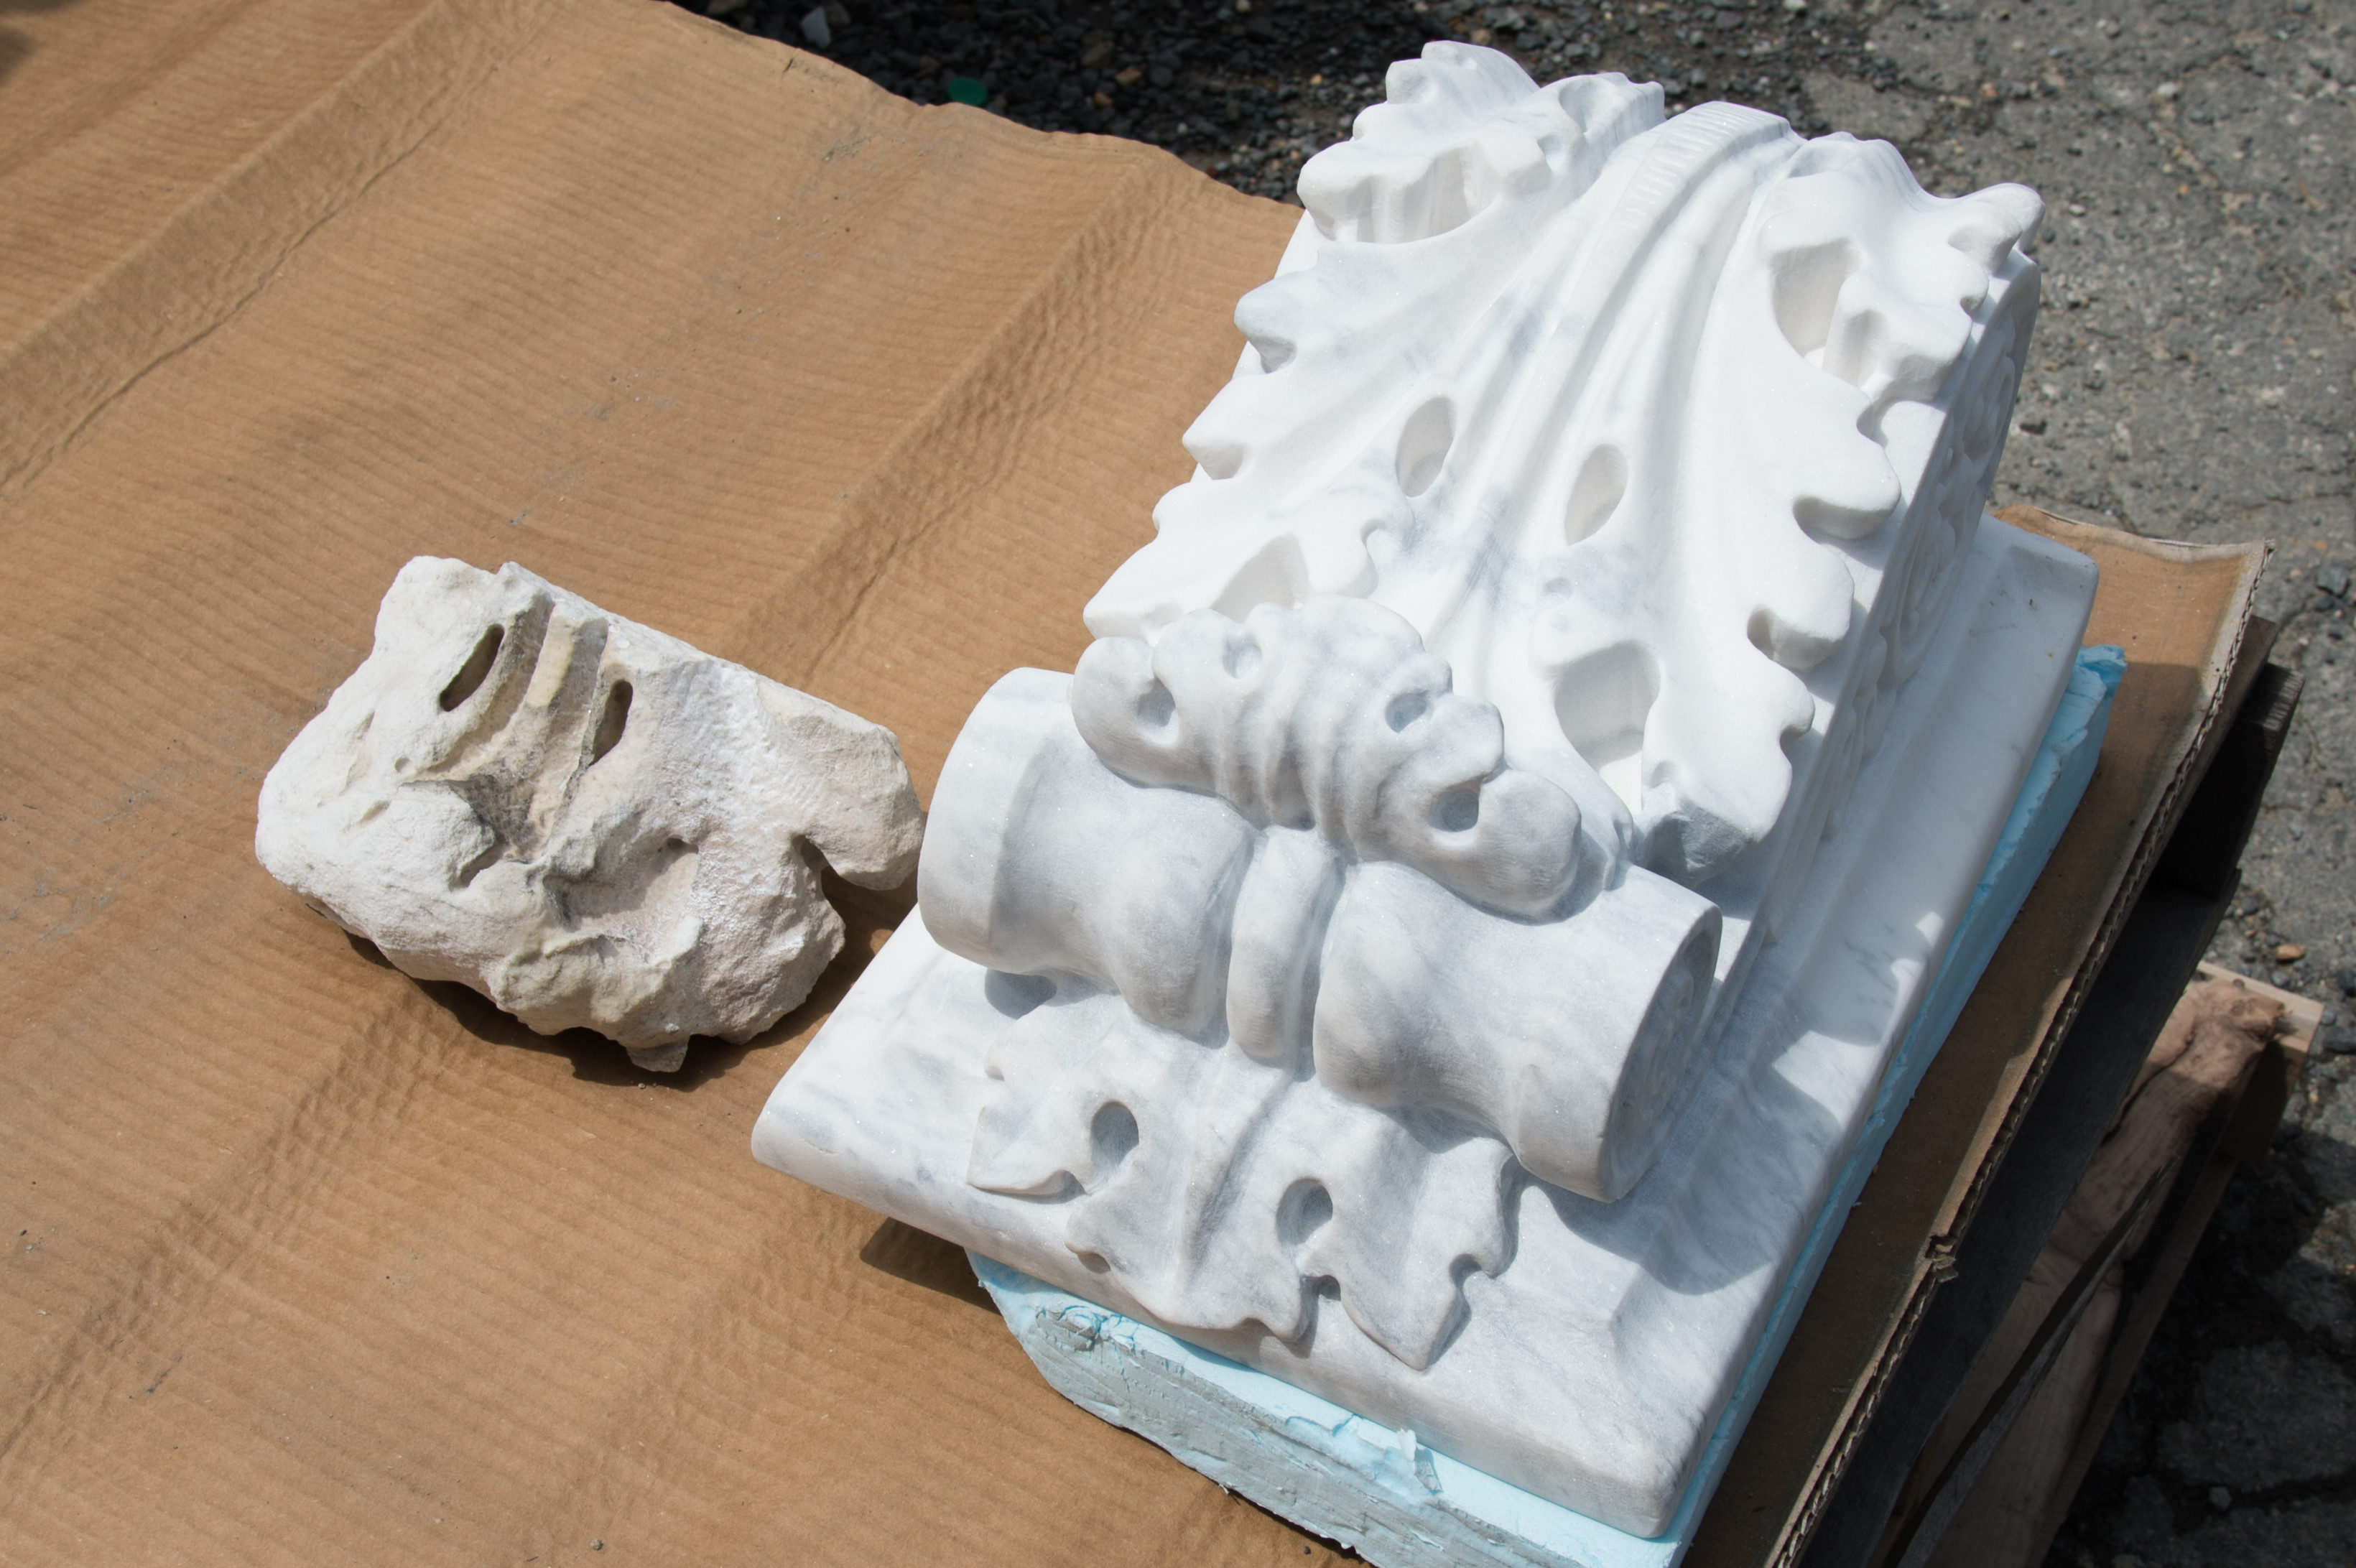 Piece of a deteriorated modillion or bracket from the U.S. Capitol (left) next to a newly carved one (right).